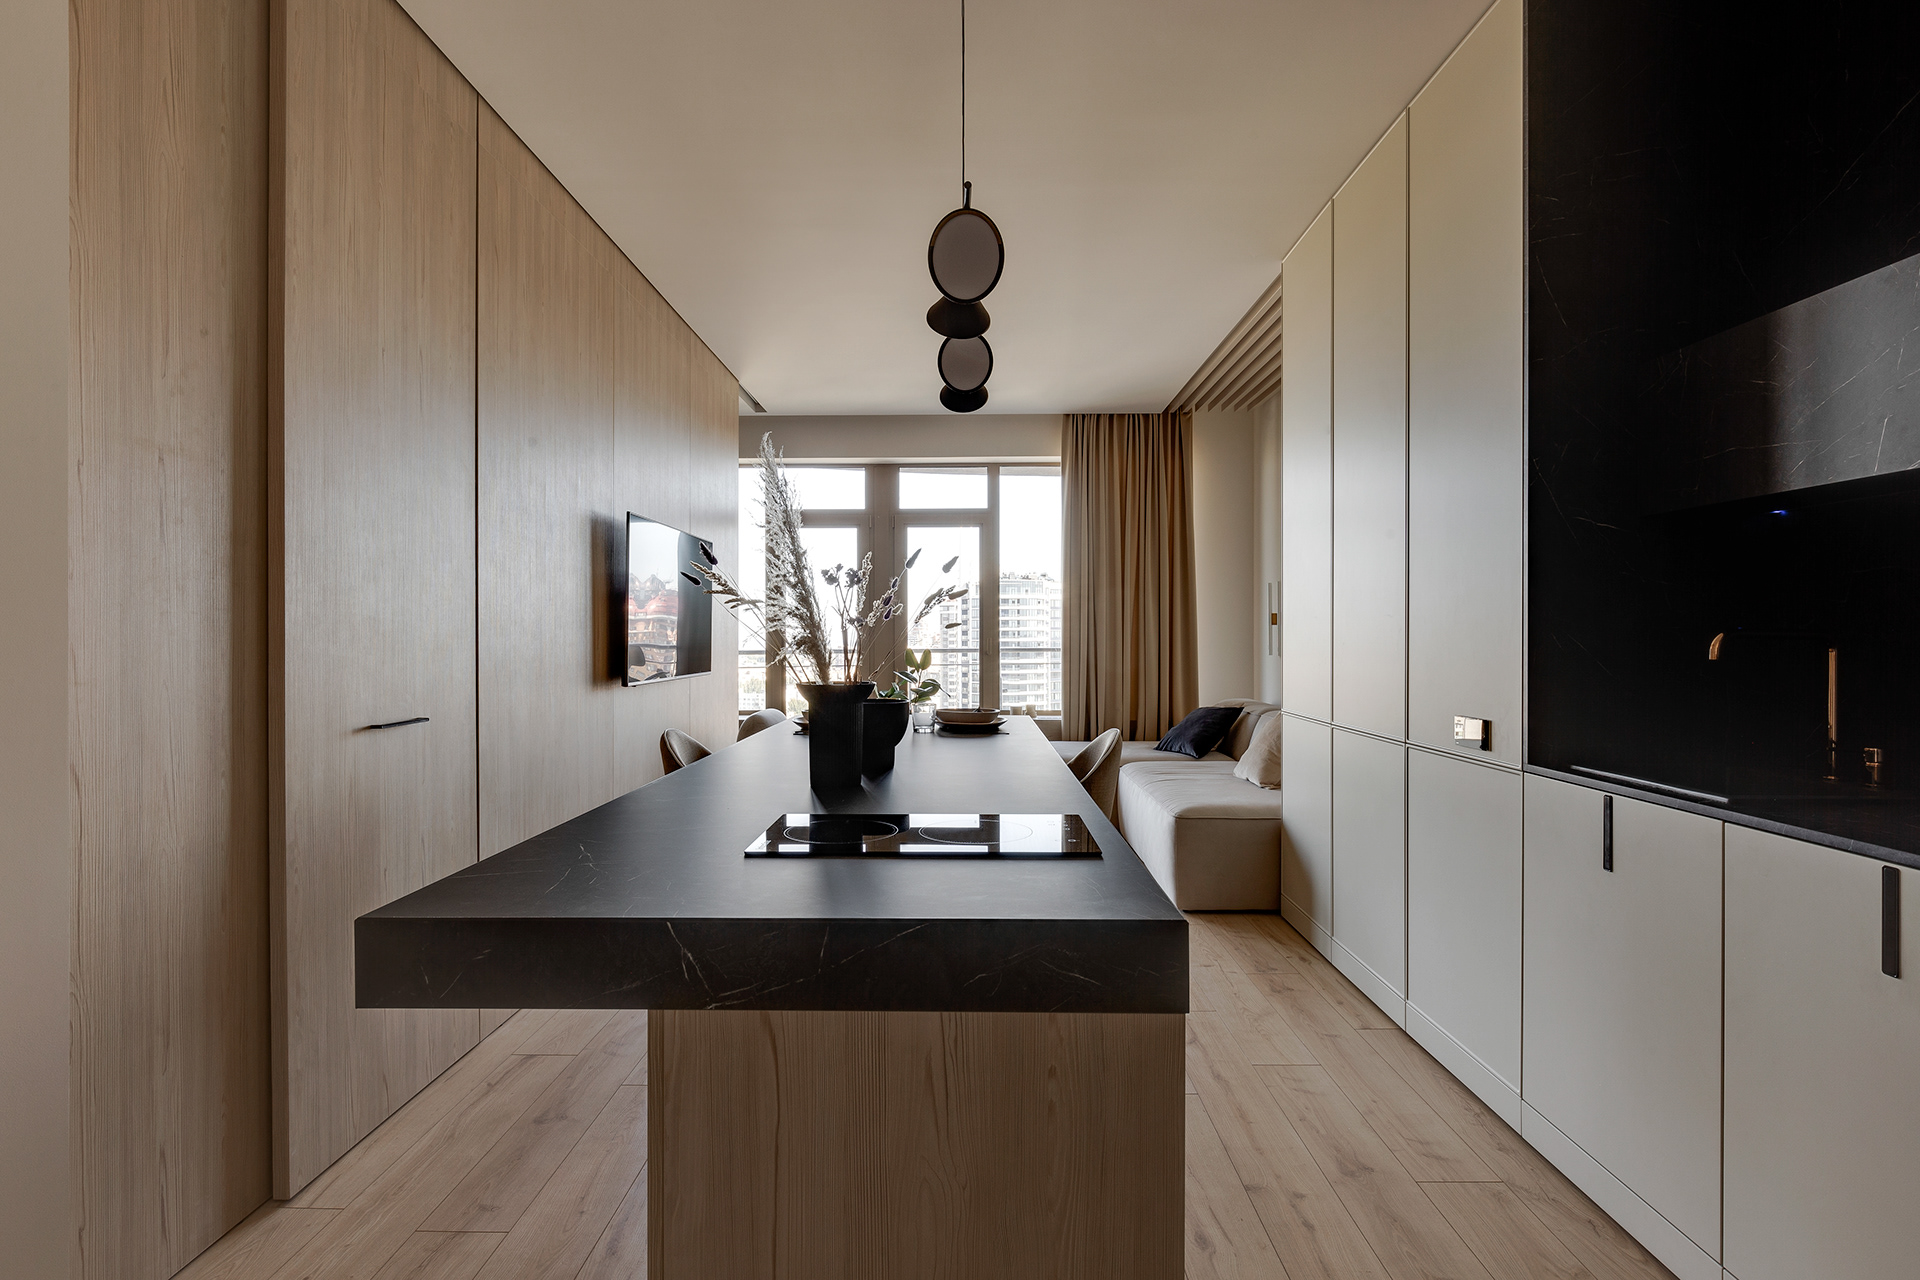 kitchen interior design with living room in neutral colors